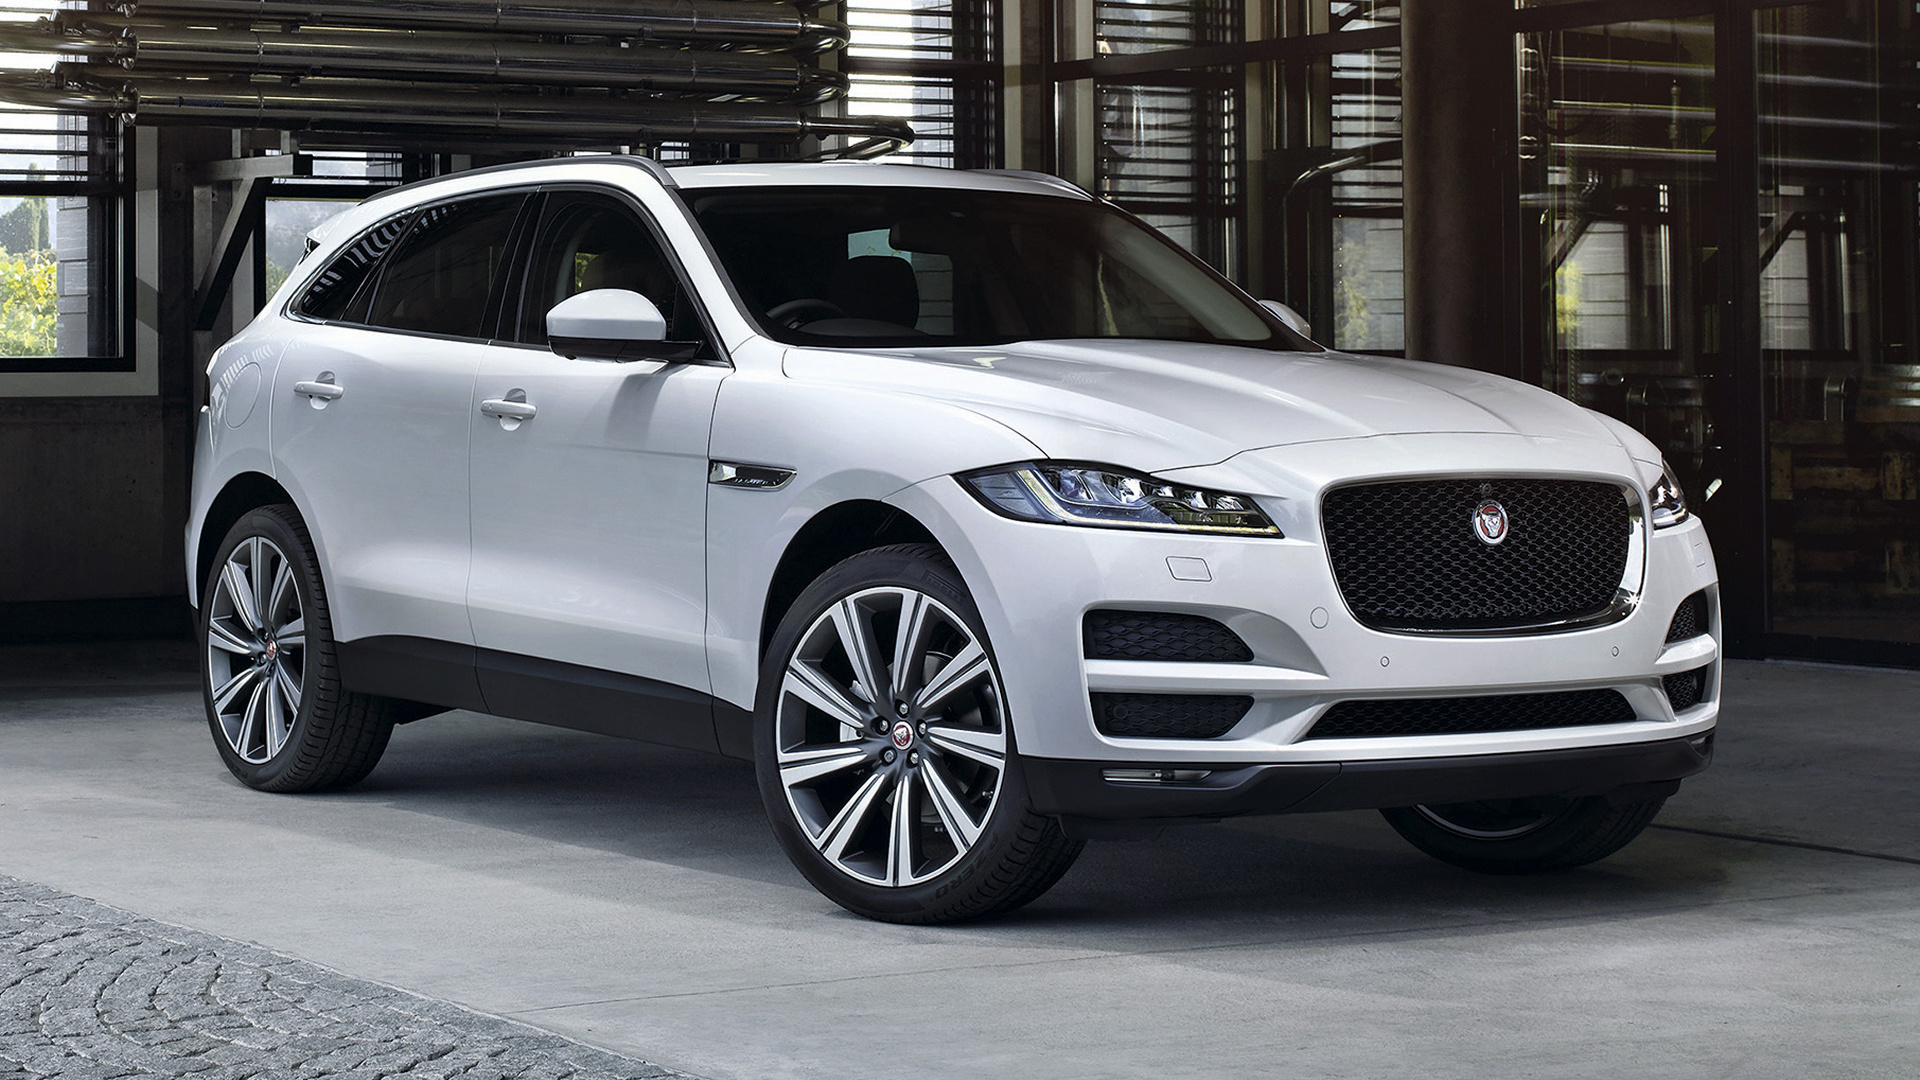 Jaguar F-Pace (2016) UK Wallpapers and HD Images - Car Pixel